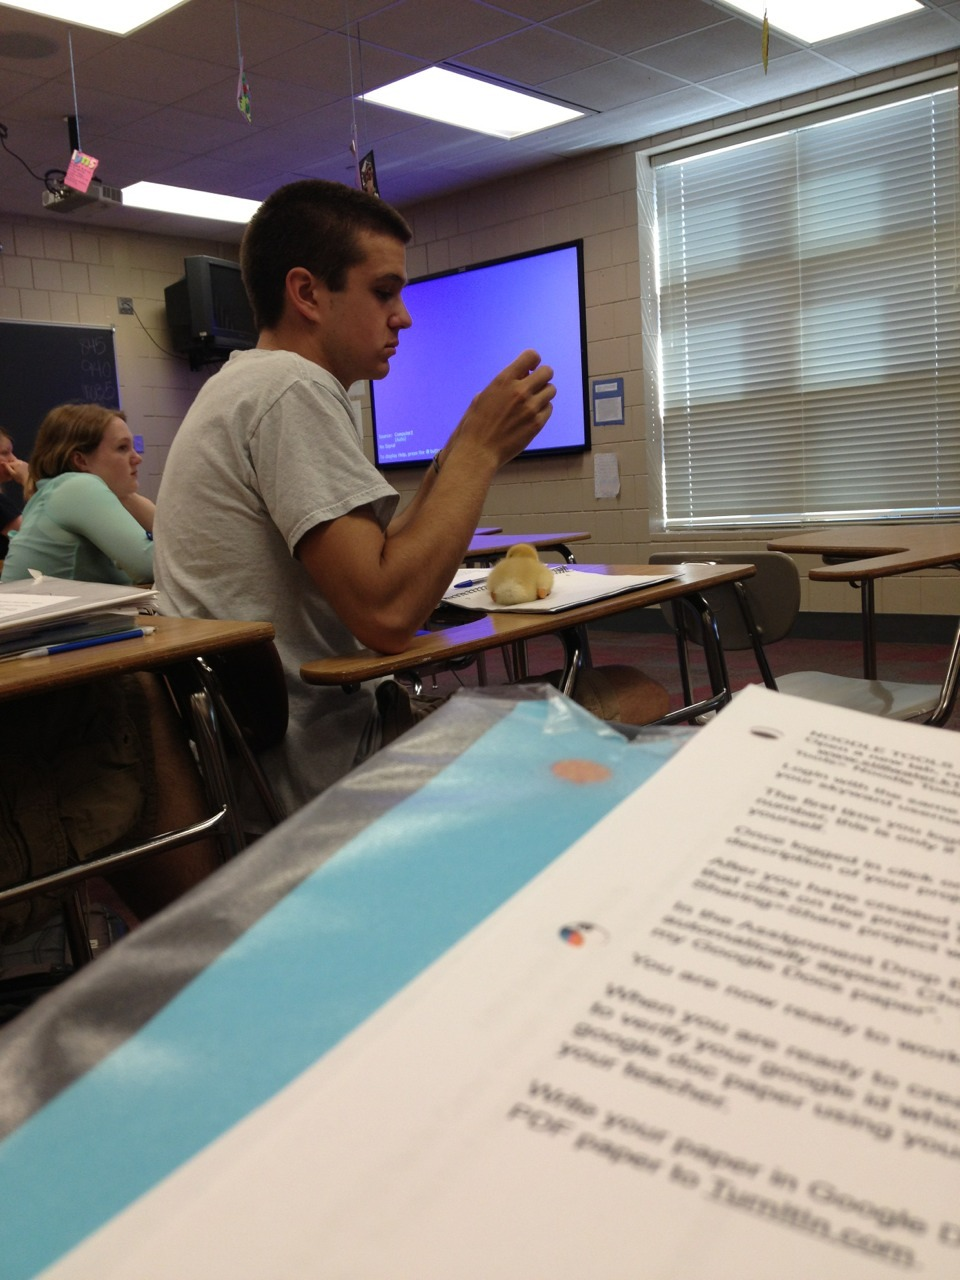 savage-ramagious-love:  teenytigress:  SO THIS GUY IN MY ENGLISH IS DOING A PROJECT FOR BIO WHERE HE GETS A DUCKLING TO IMPRINT ON HIM SO HE JUST CARRIES IT AROUND WITH HIM TO ALL OF HIS CLASSES AND I SWEAR THIS DUCK IS THE MOST WELL BEHAVED FUCKING POULTRY IVE EVER SEEN IT JUST SITS ON HIS DESK QUIETLY AND SOMETIMES HE PUTS IT IN HIS POCKET AND IT JUST SLEEPS LIKE WOW YOU GO DUCKY